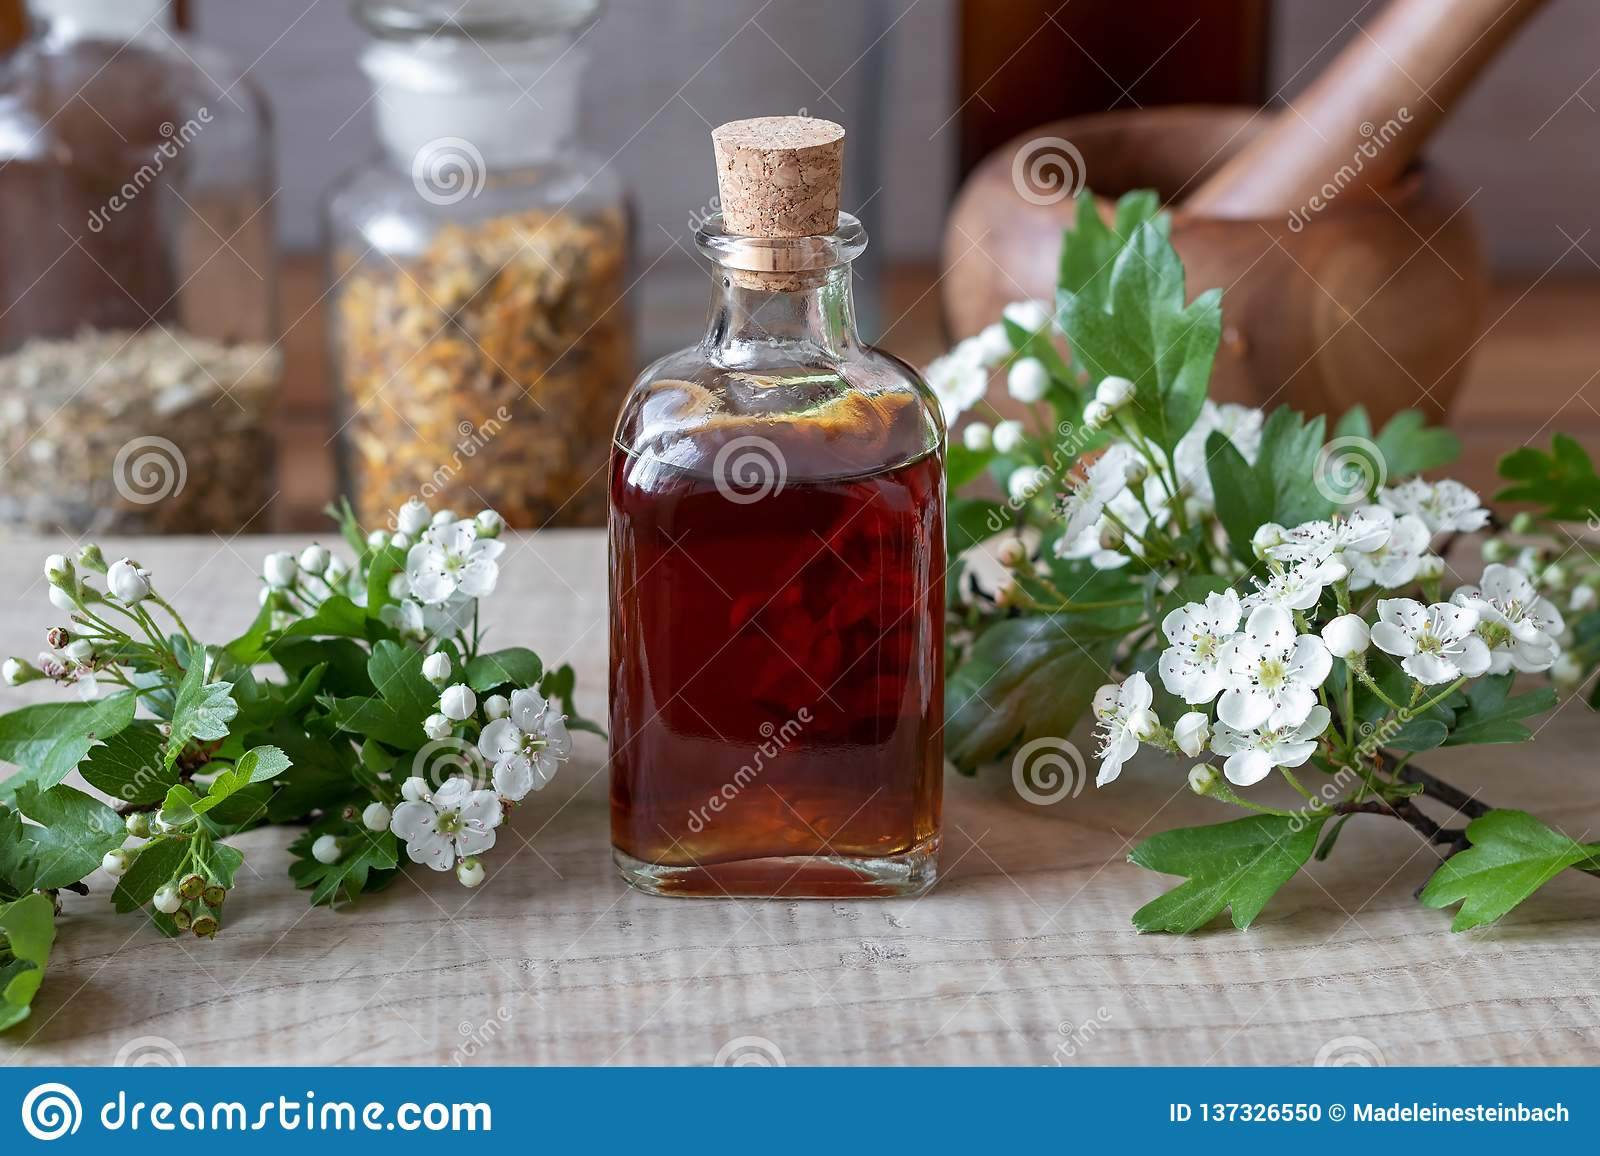 A Bottle Of Hawthorn Tincture With Fresh Blooming Hawthorn Branches ... c9a6410fbd2b